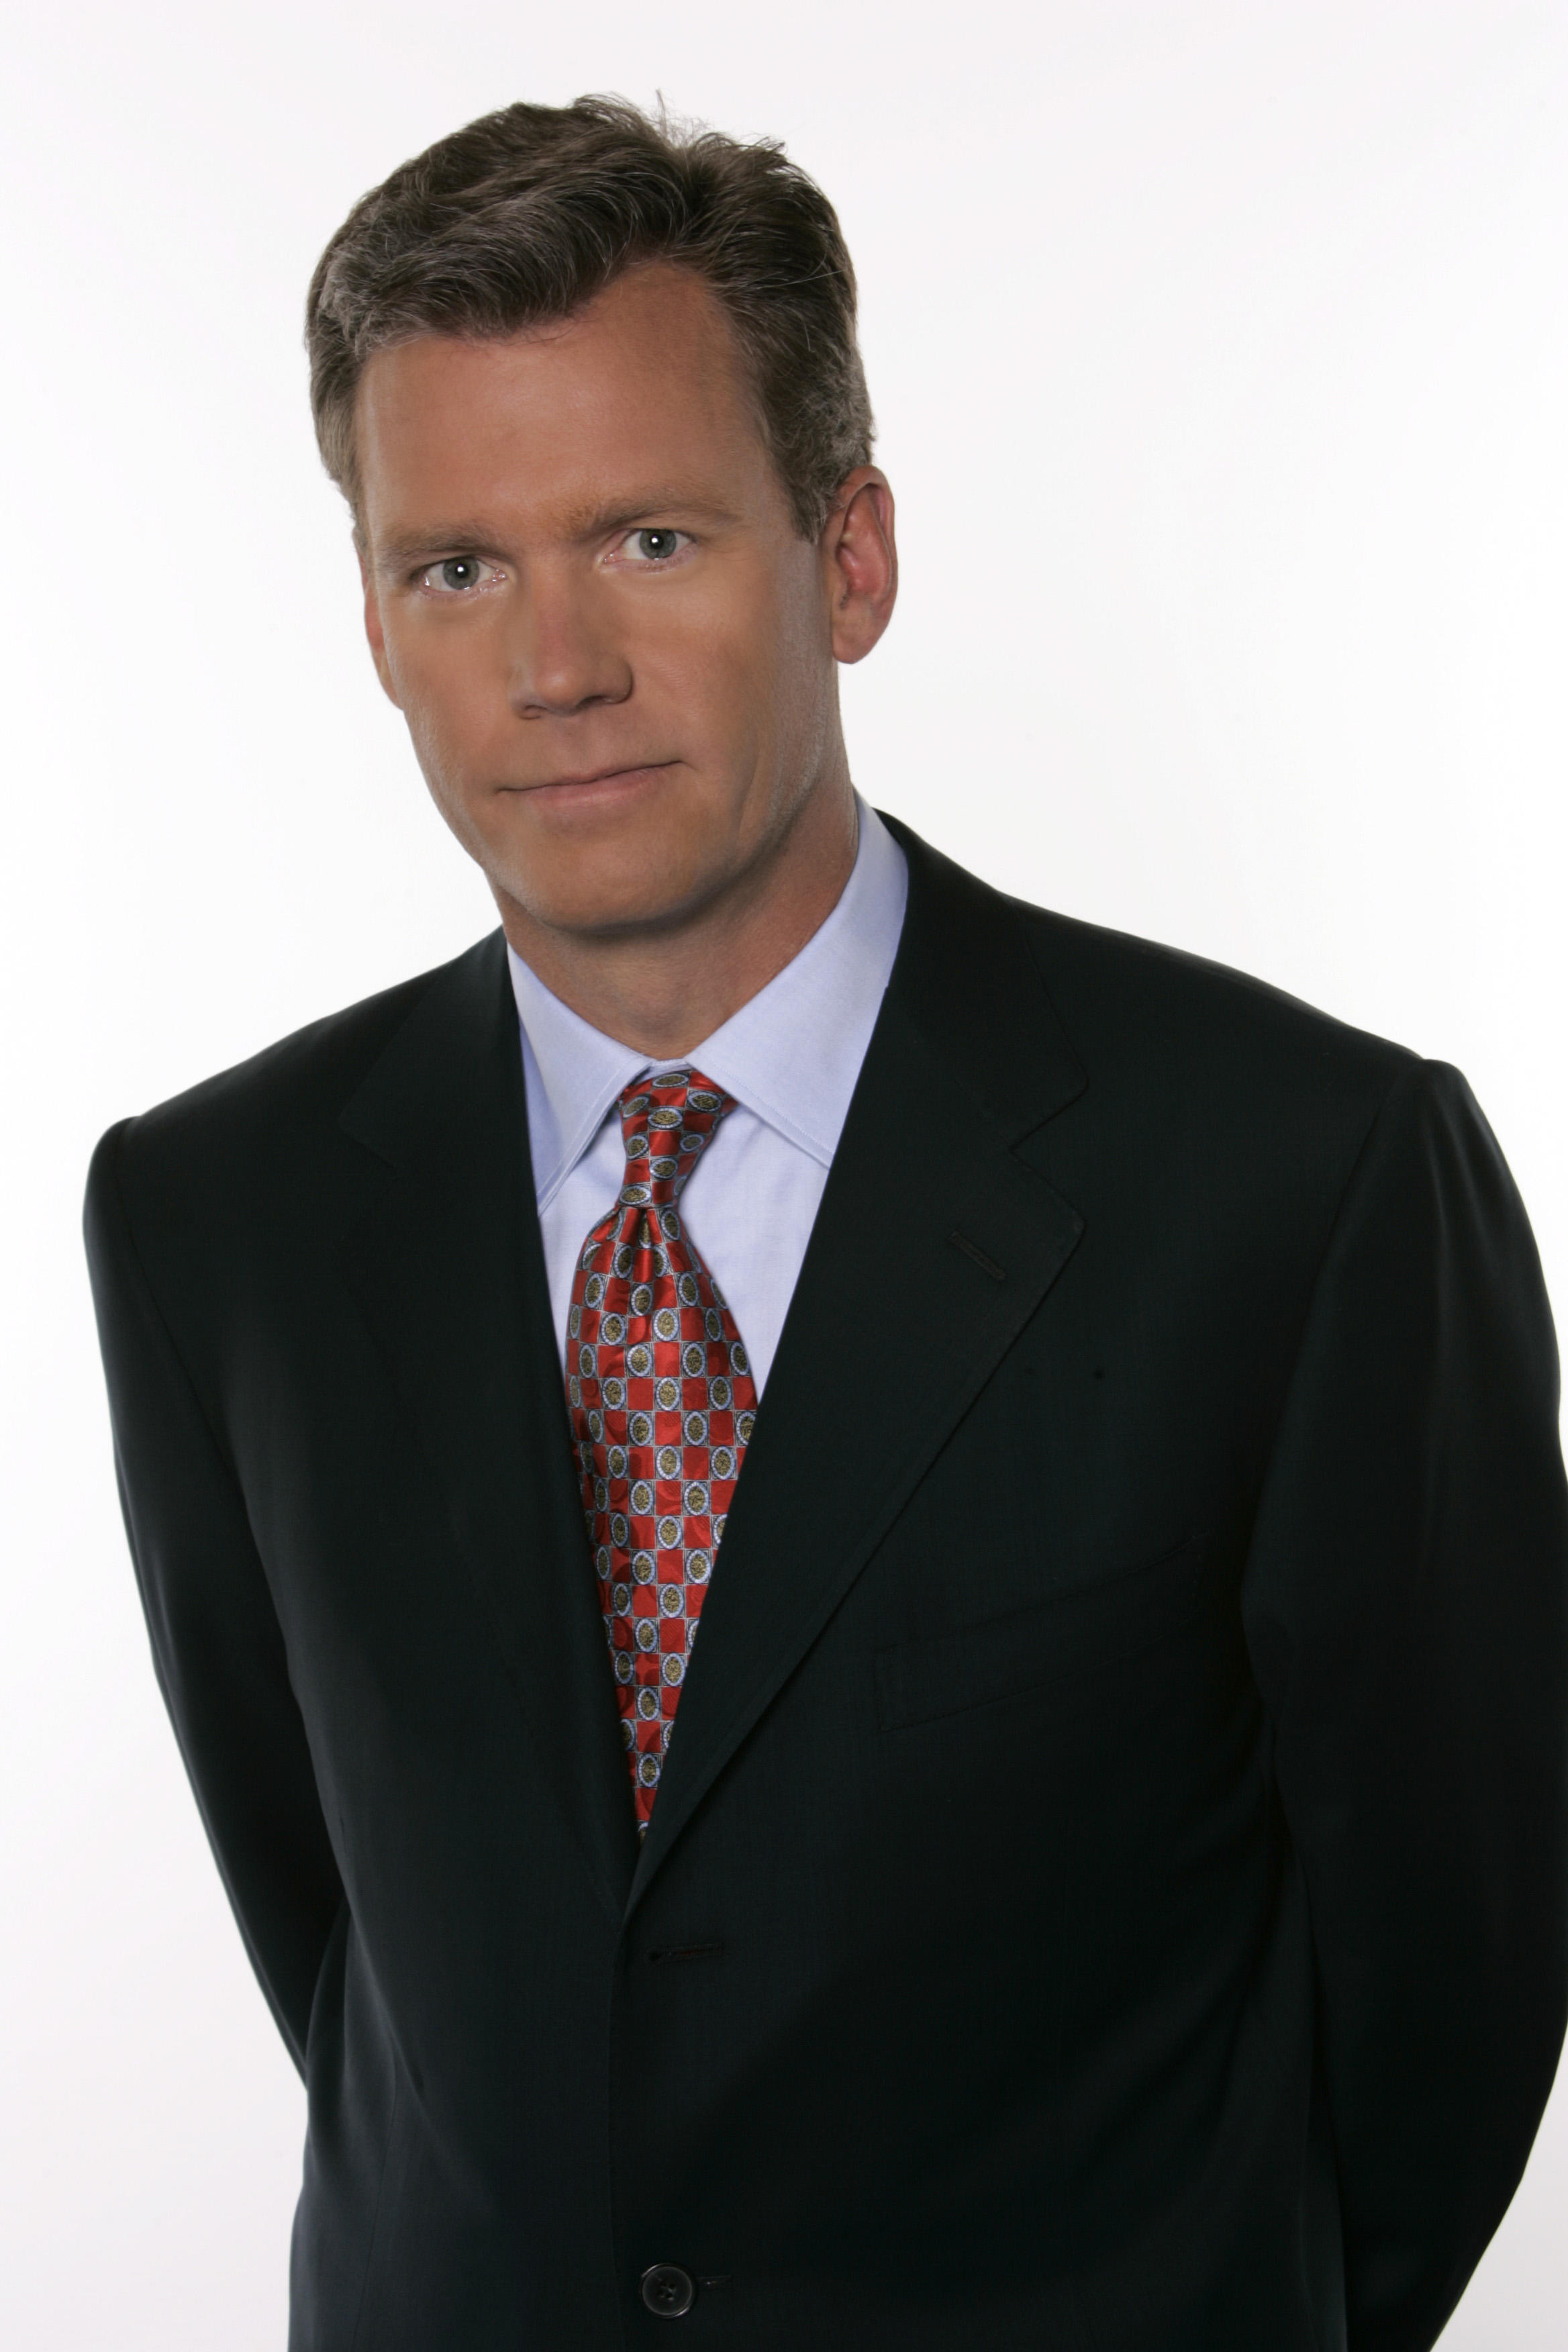 [Image - 291575] | Chris Hansen | Know Your Meme